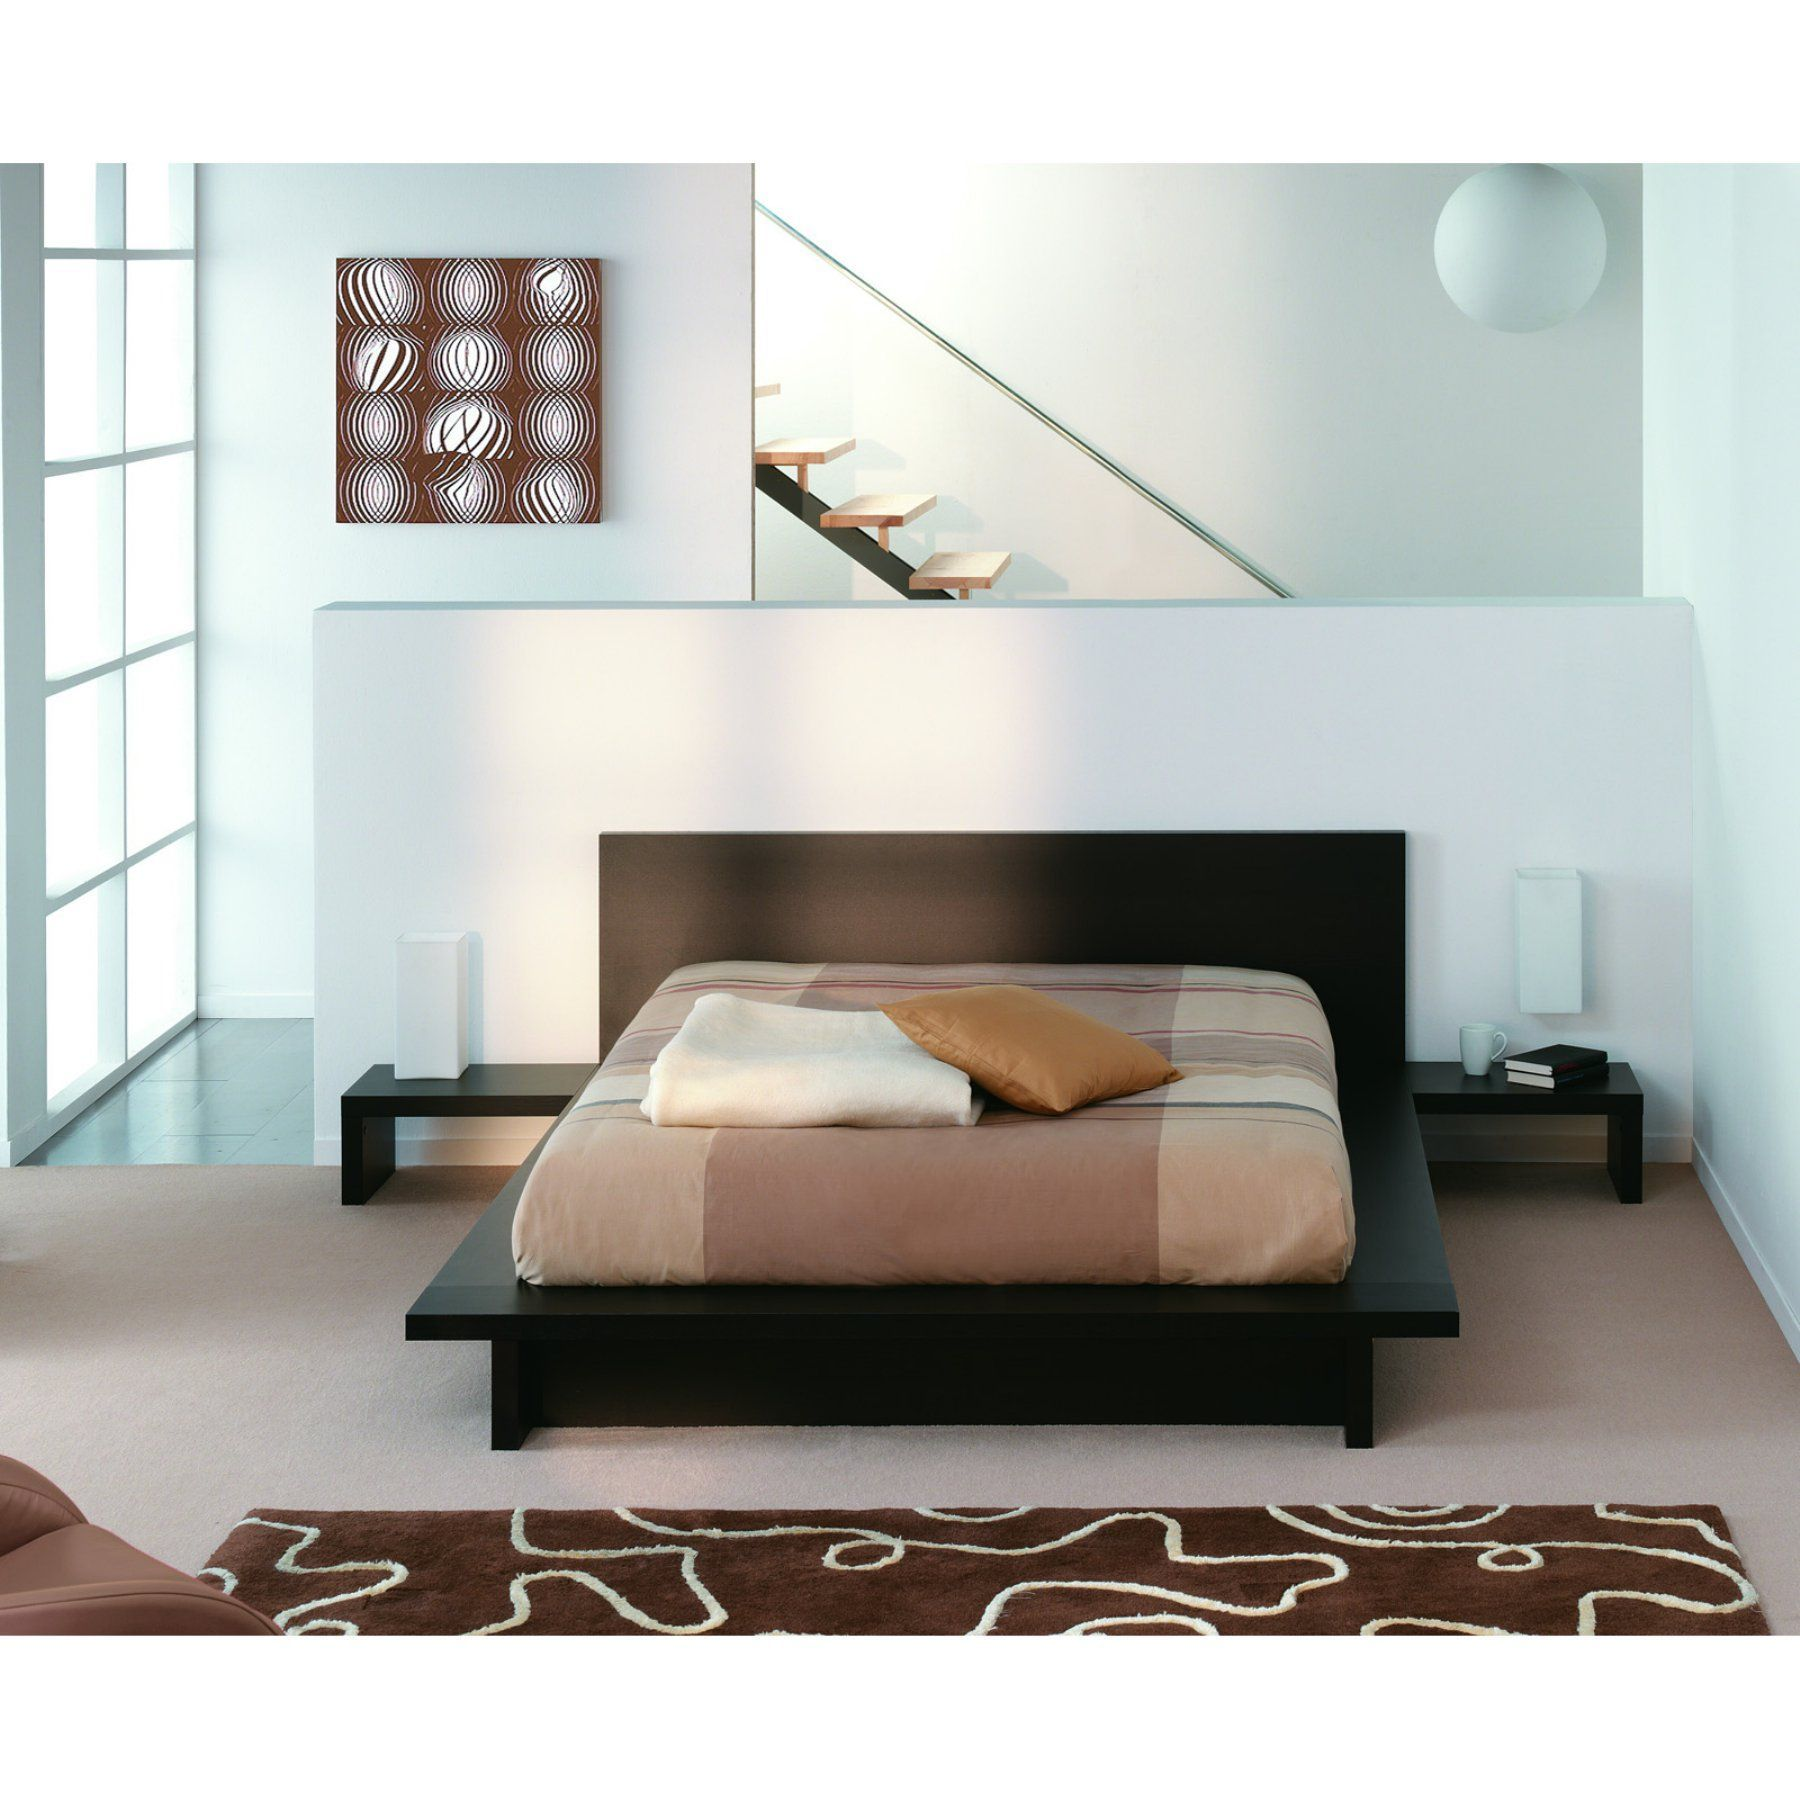 Tema Home Sono Queen Size Bed with Attached Nightstands